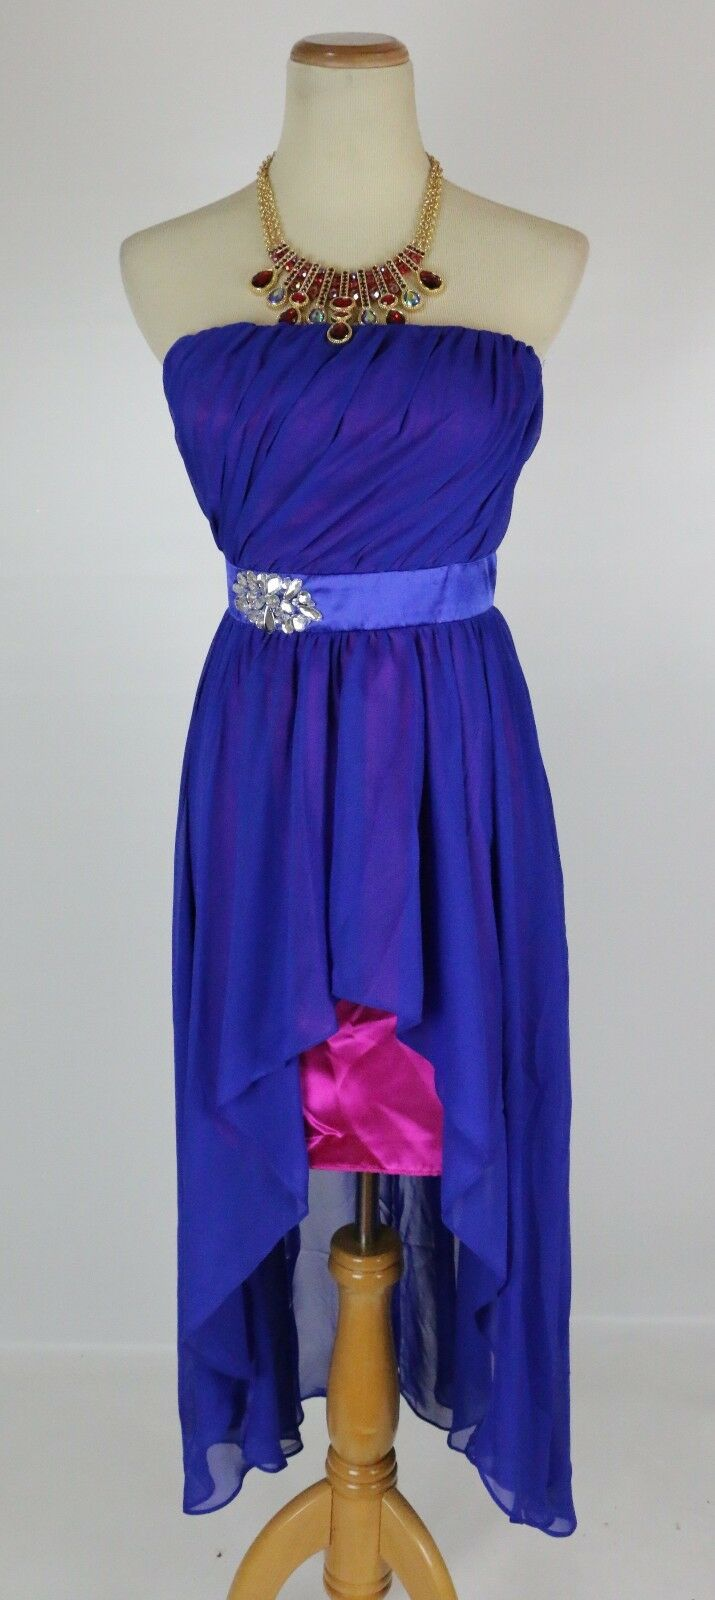 NEW Hailey Logan  Evening Prom Formal Royal Low-High Strapless Dress size 5